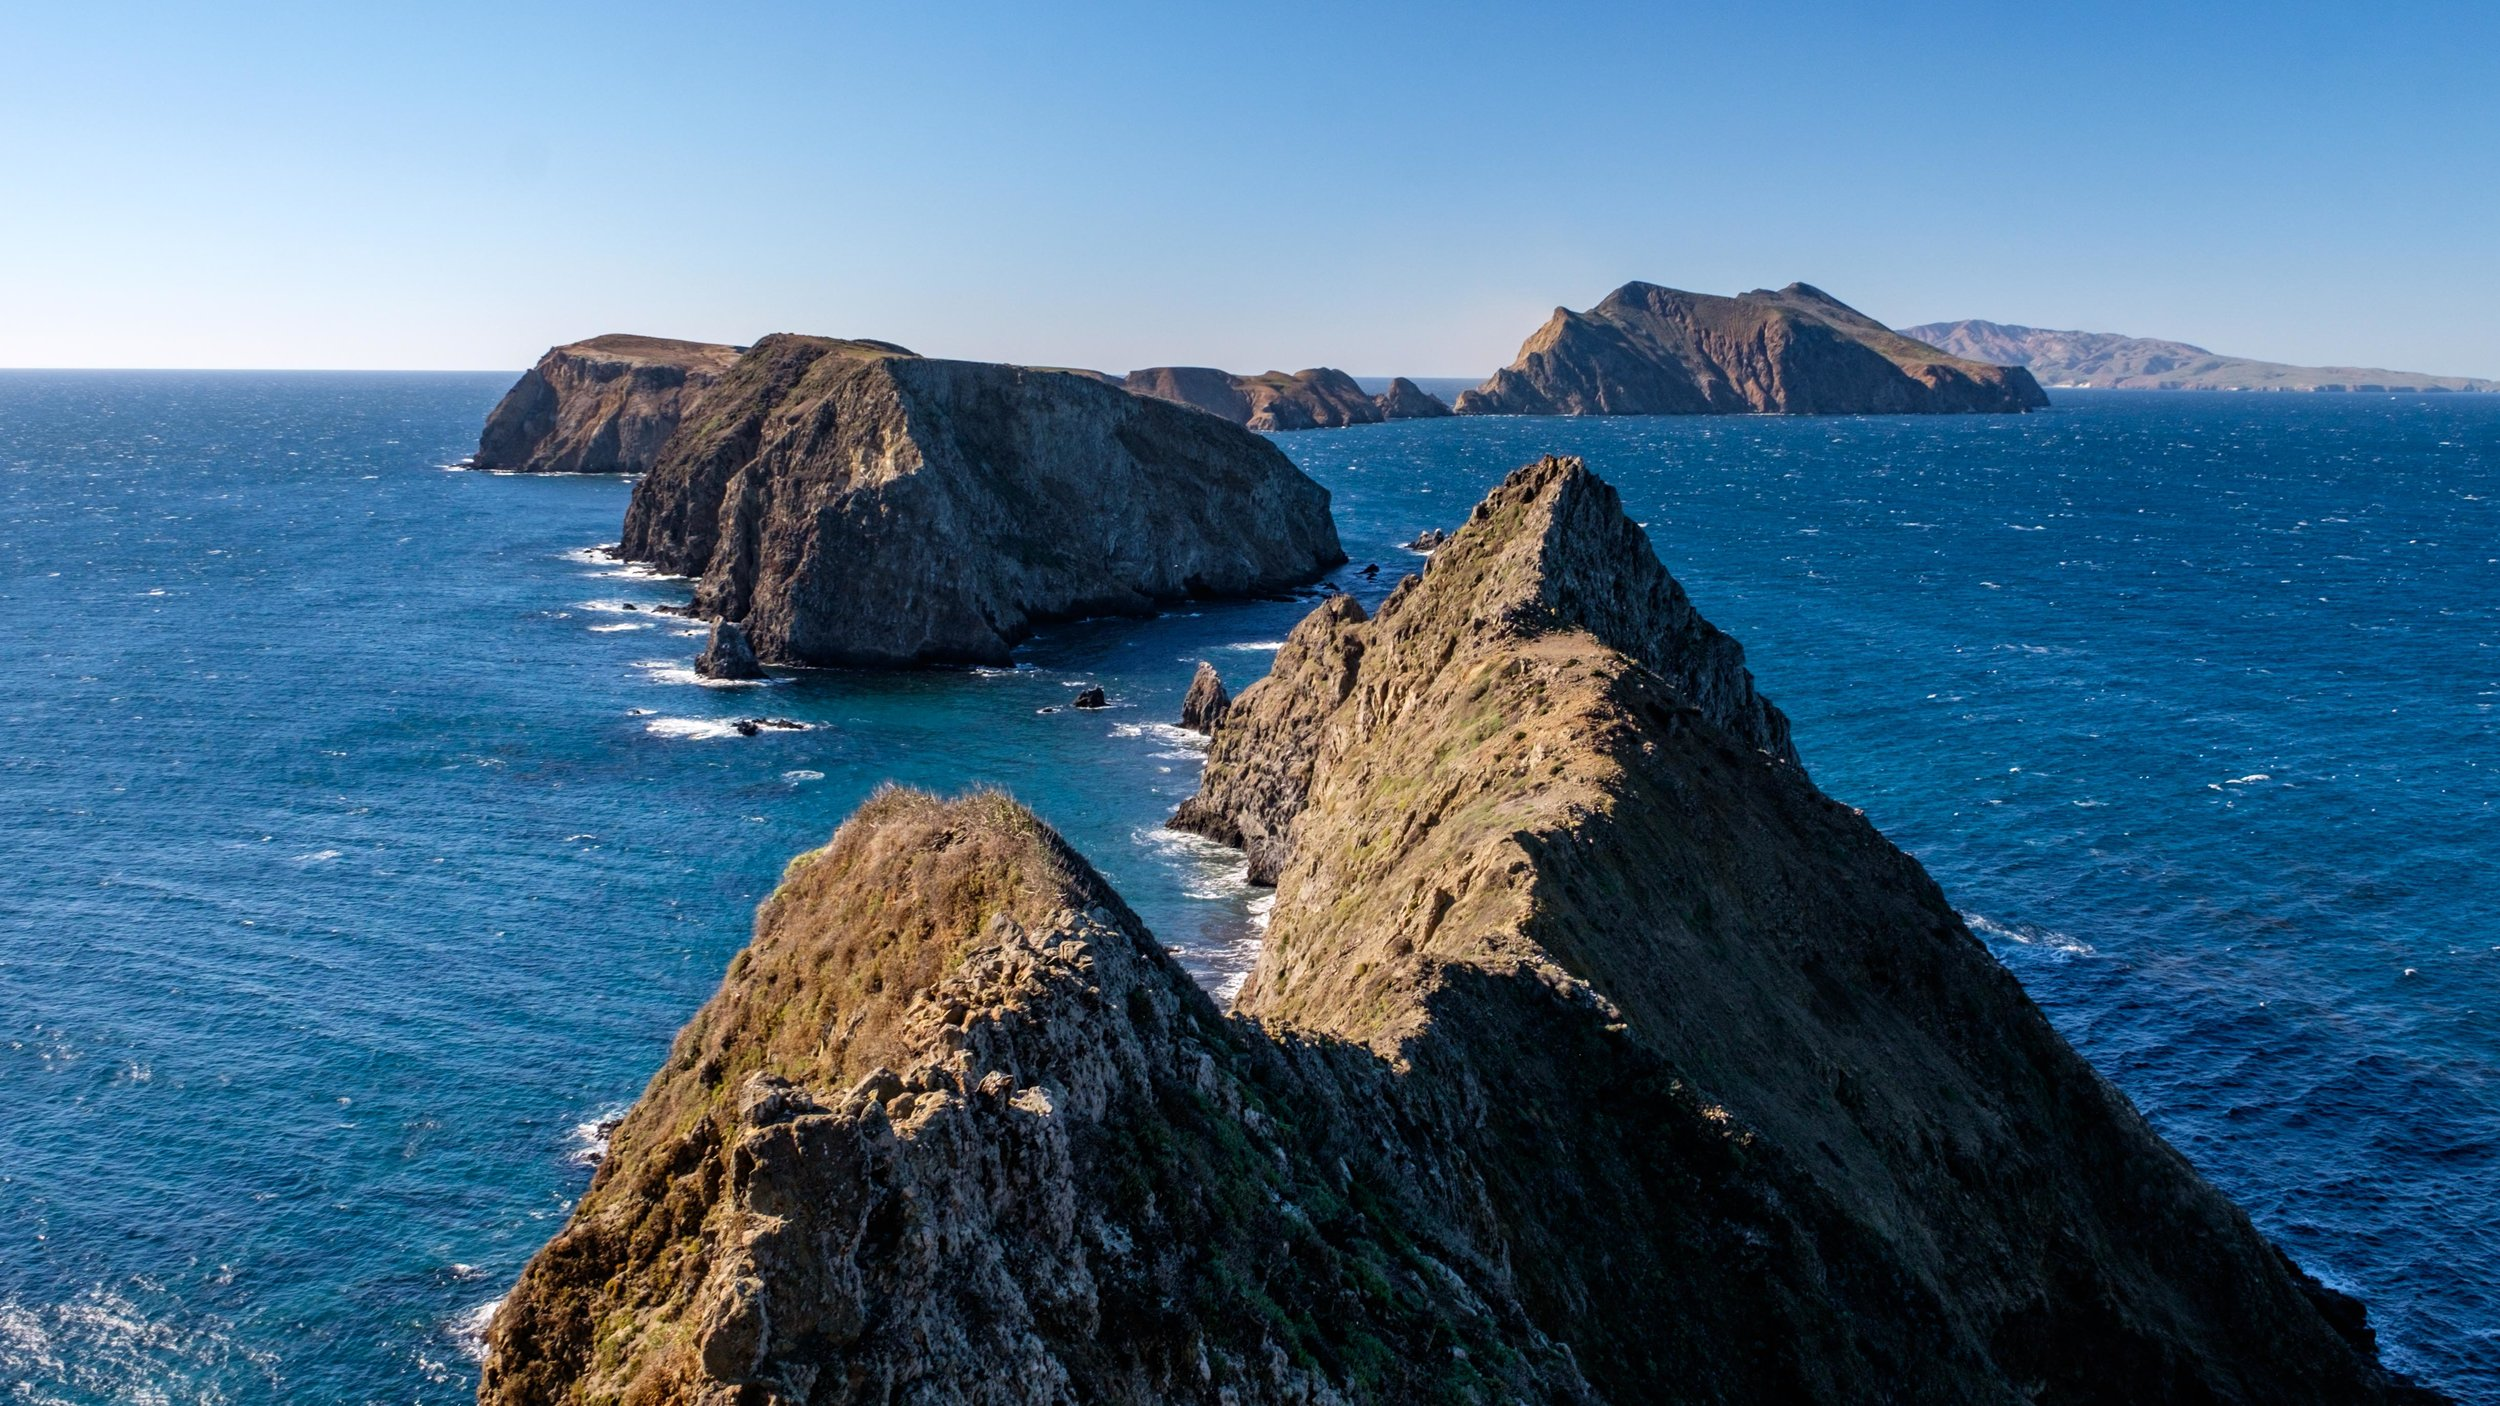 A view of the Channel Islands from Inspiration Point on Anacapa Island.